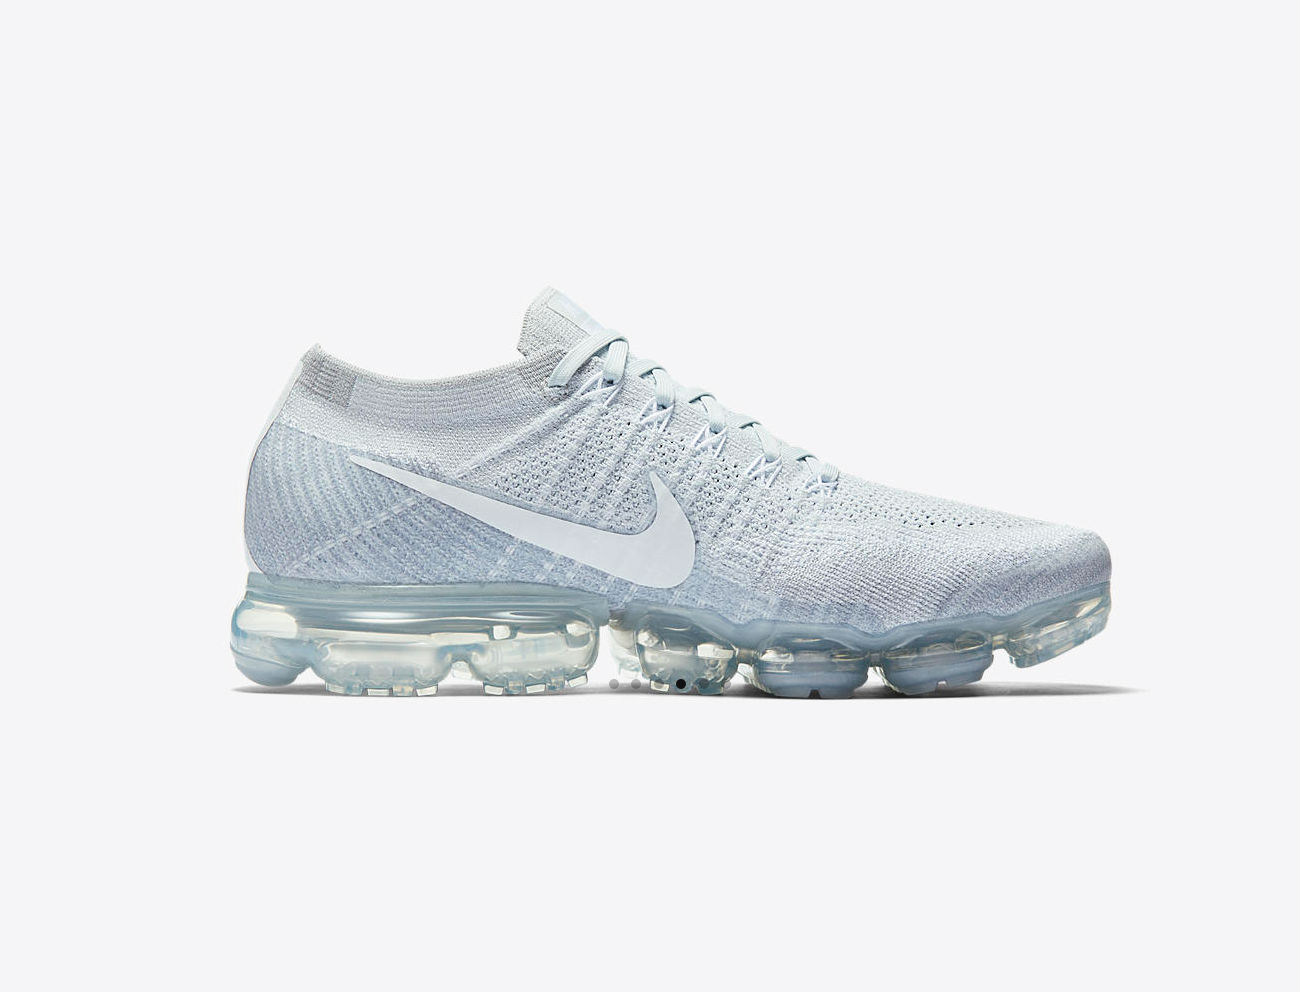 Here Are the Details on Nike's Air VaporMax